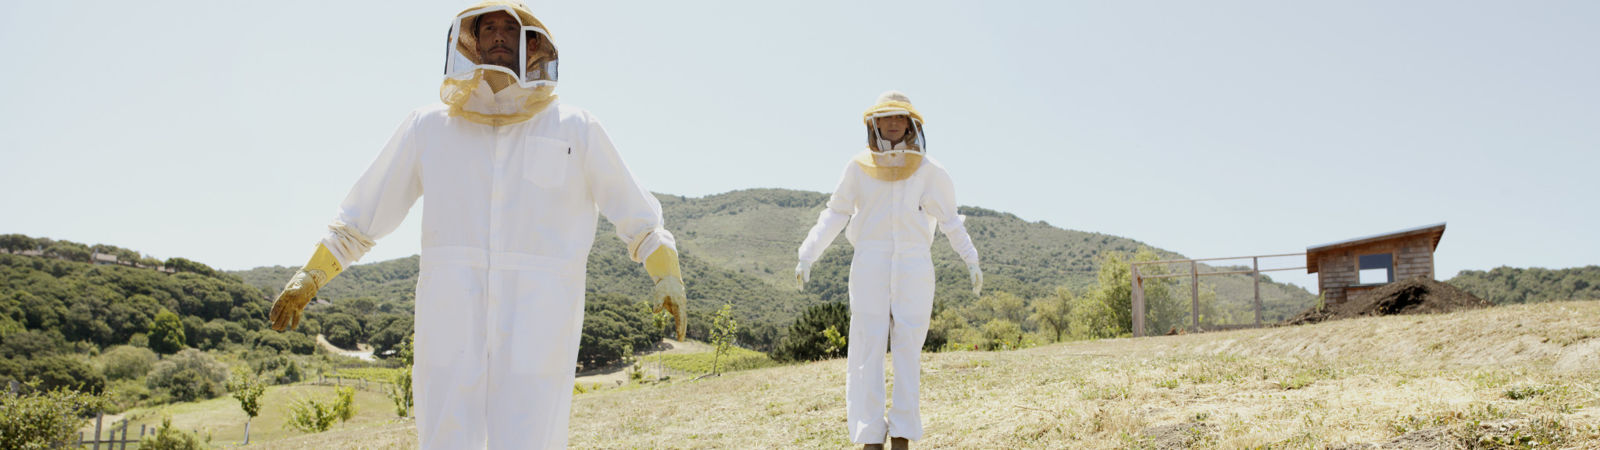 Carmel Valley Ranch_Activities_Bee Experience_Bee Suit_Jumping